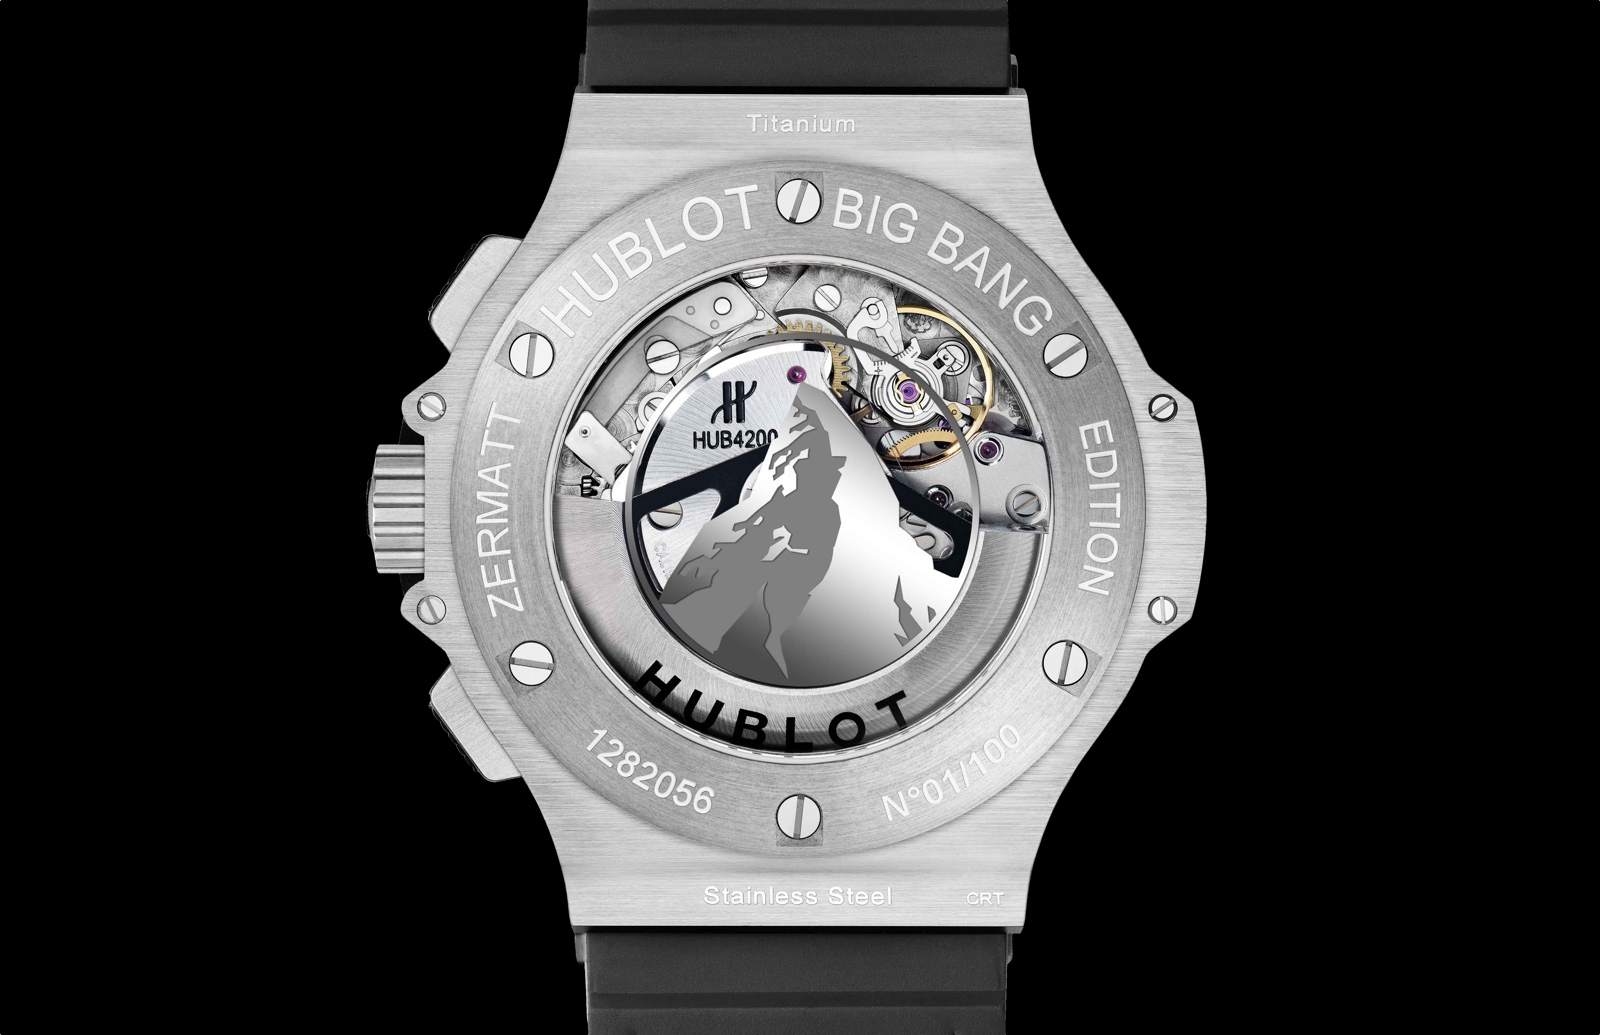 Hublot Big Bang Zermatt - fondo